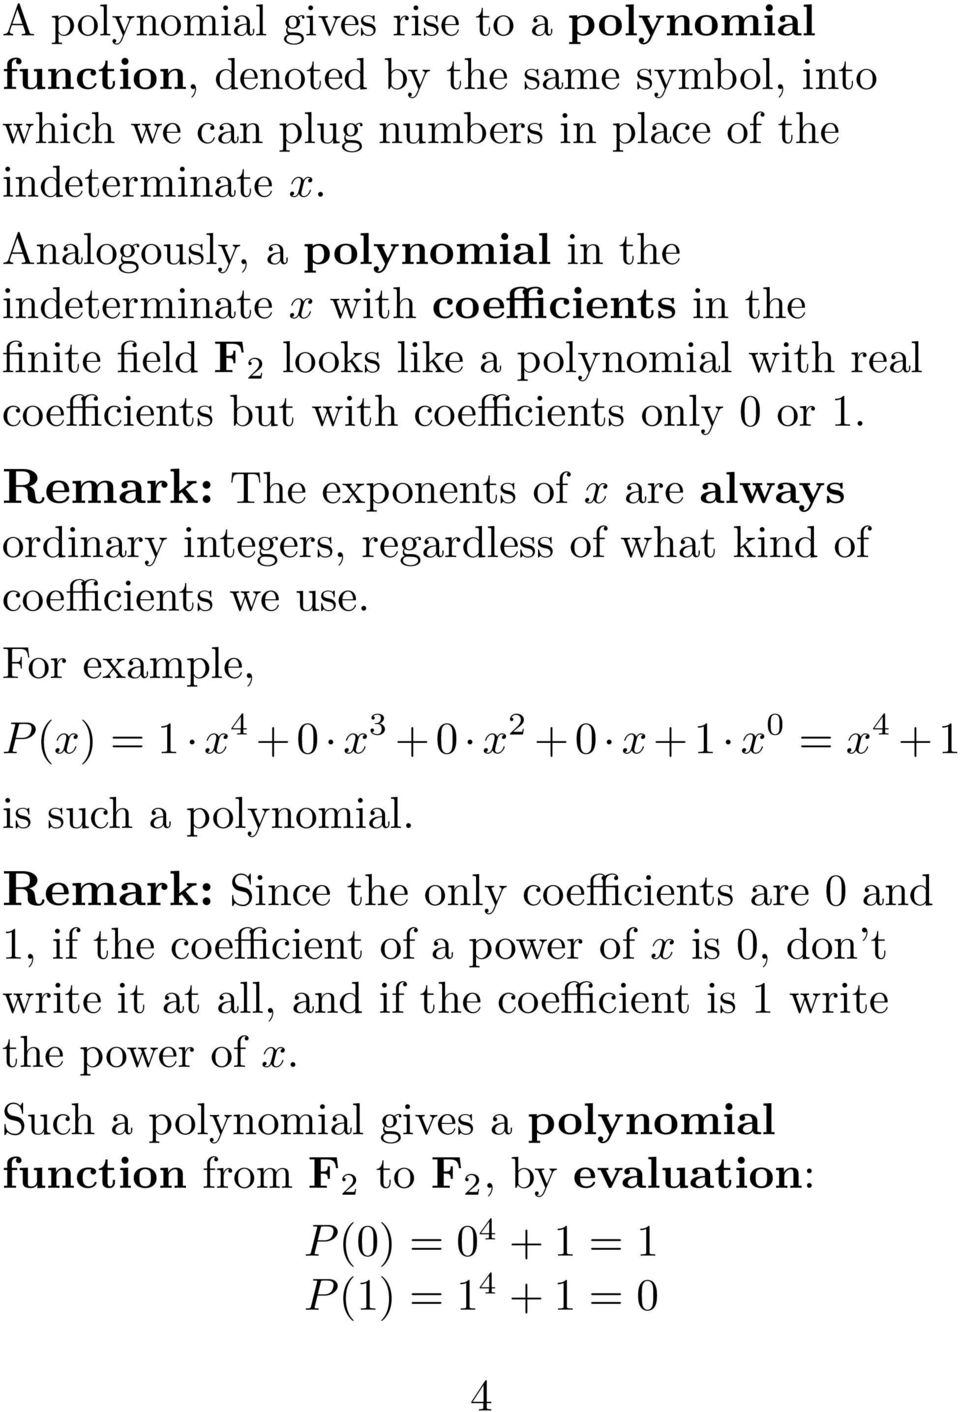 Remark: The exponents of x are always ordinary integers, regardless of what kind of coefficients we use. For example, P (x) = 1 x 4 + 0 x 3 + 0 x 2 + 0 x + 1 x 0 = x 4 + 1 is such a polynomial.